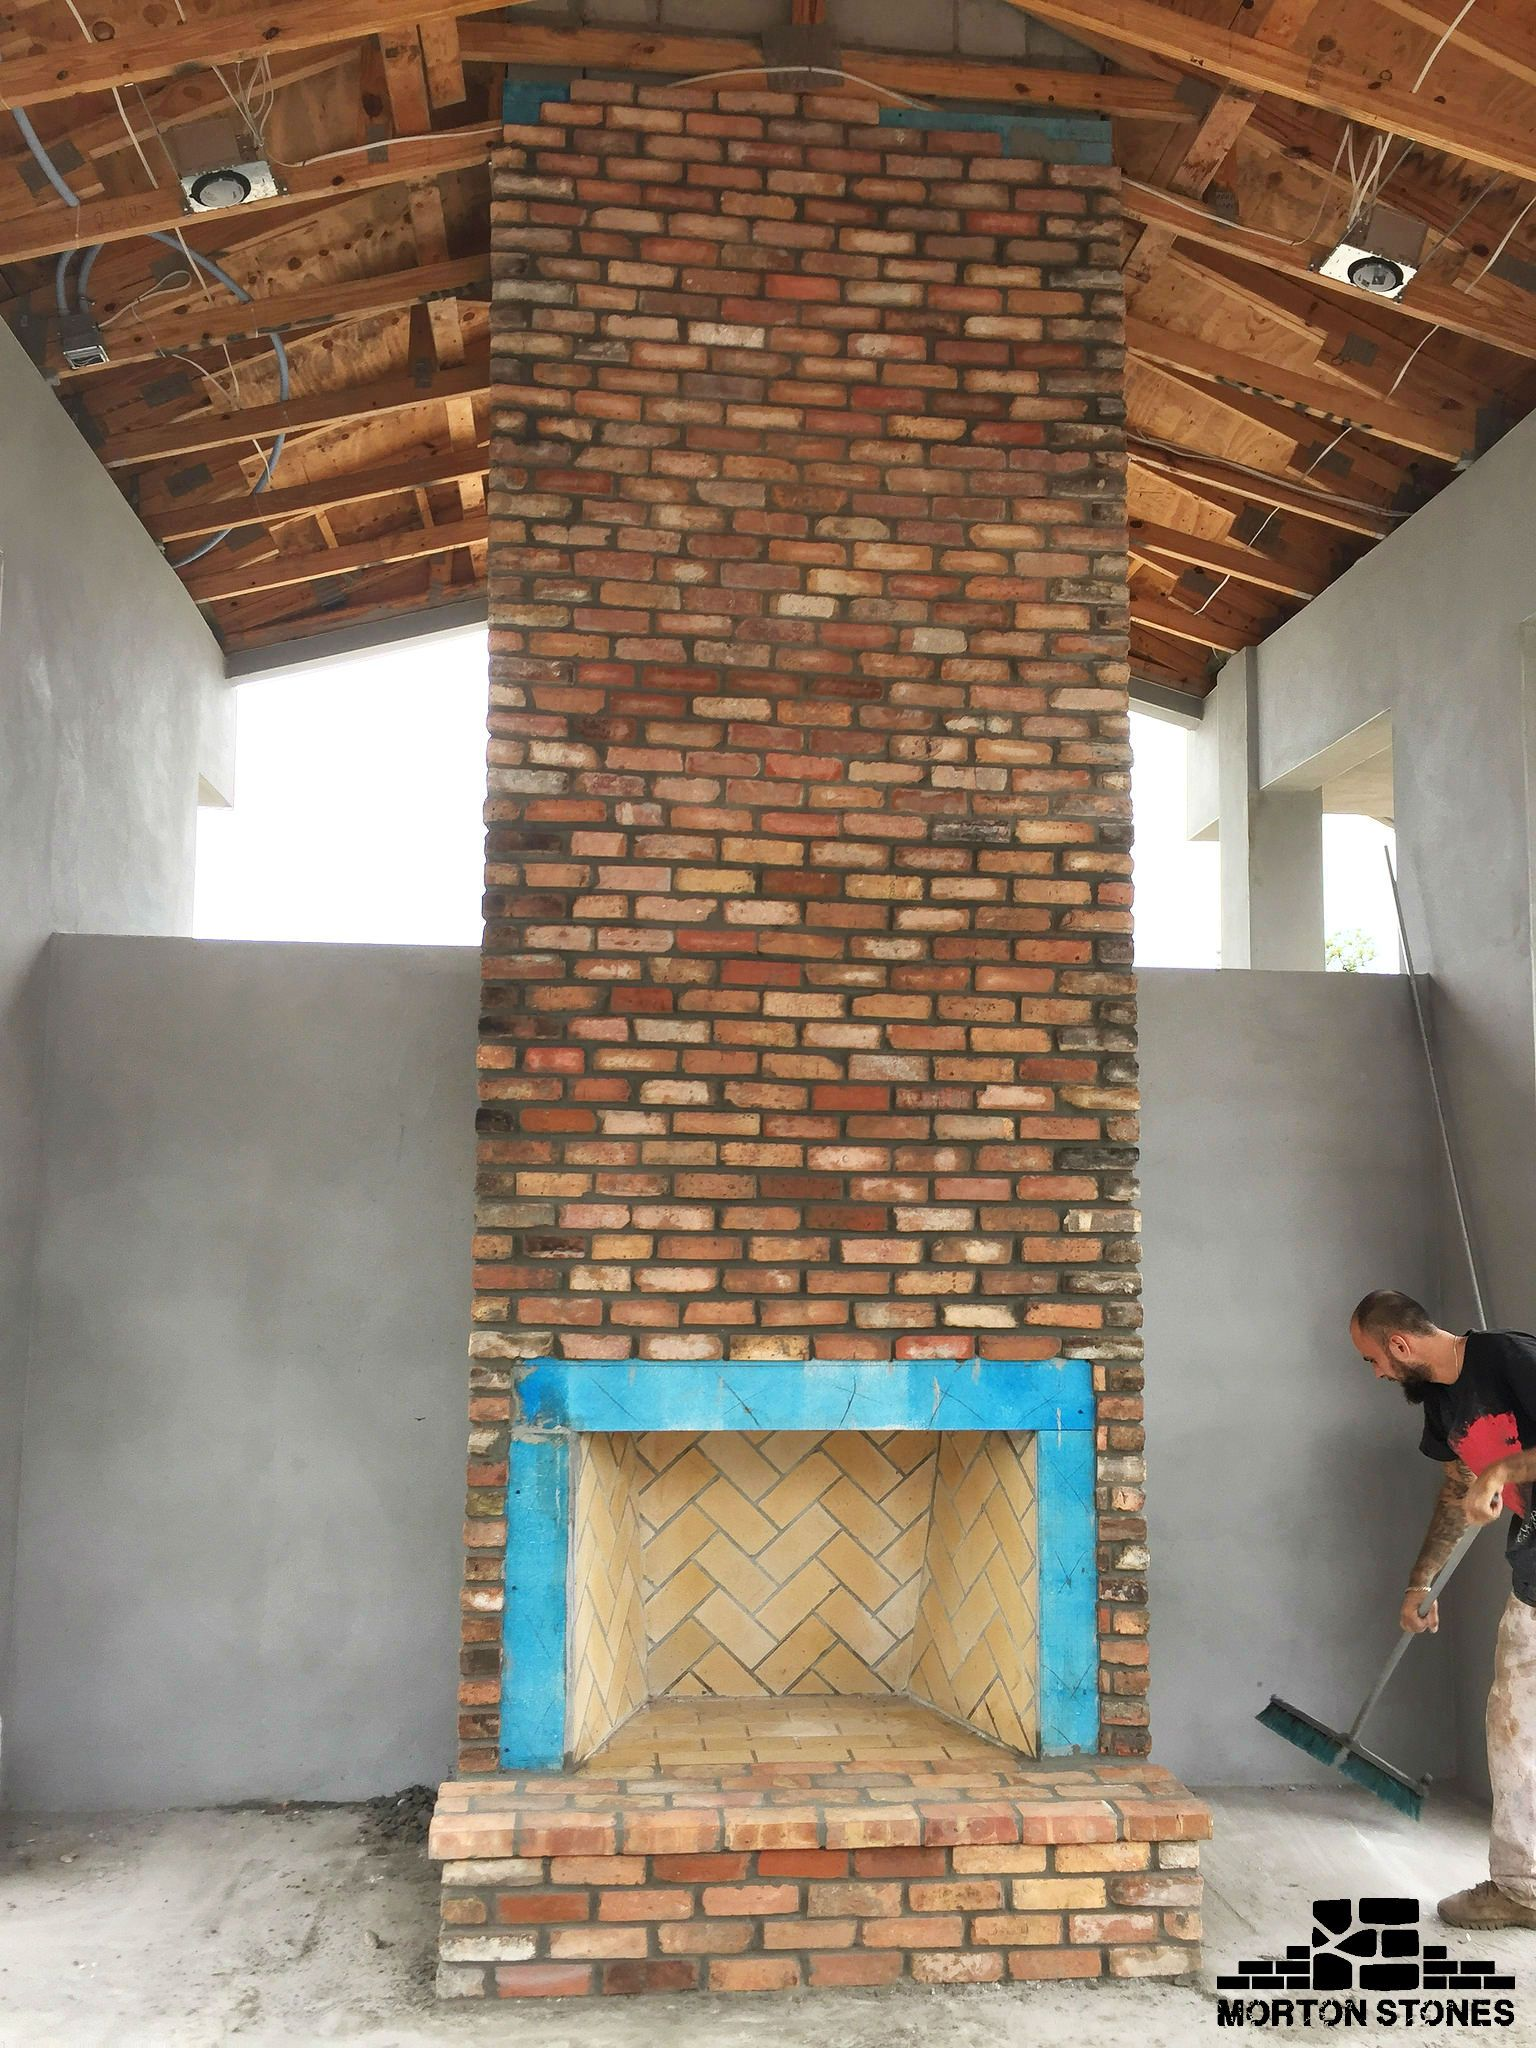 A Truly Amazing Masonry Fireplace #Mortonstones #Brick #Tiles #Rustic #Thinbrick